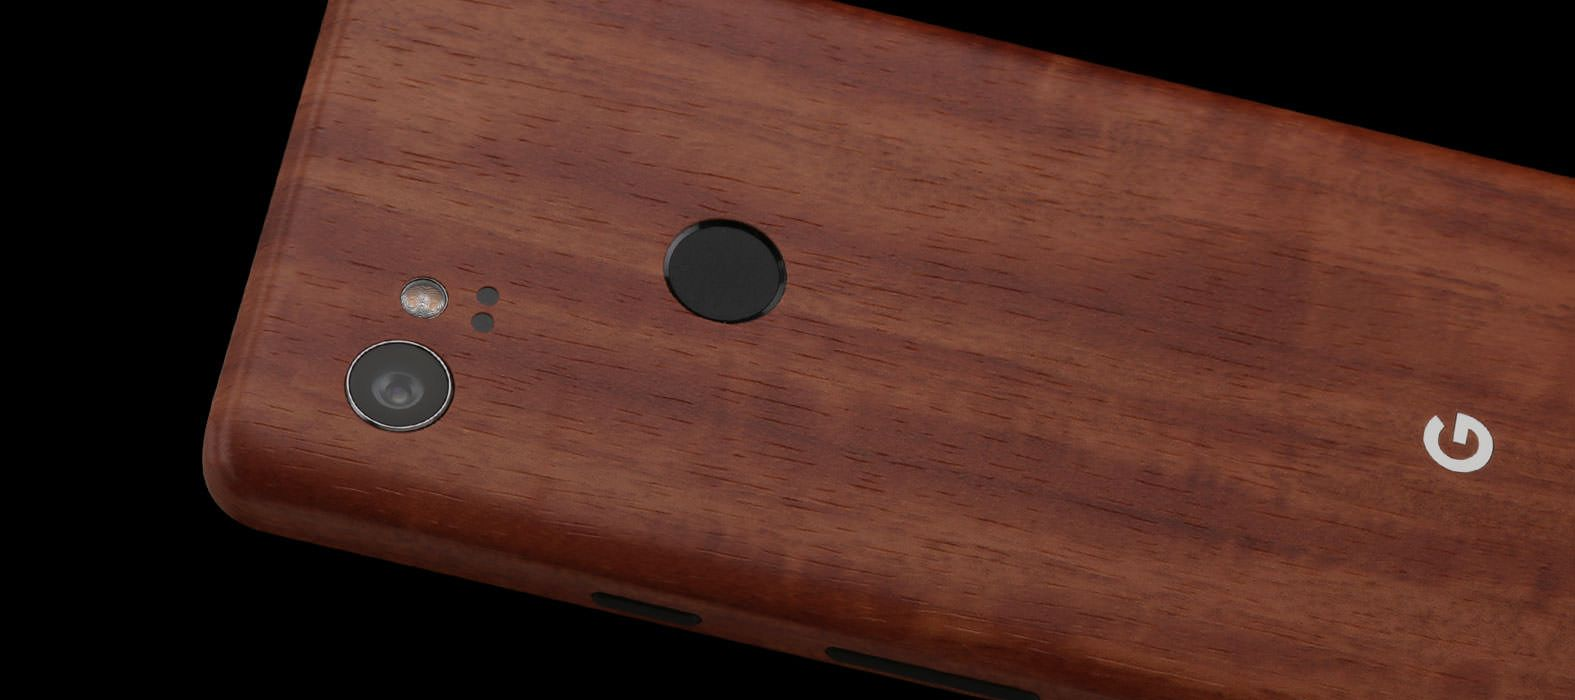 Pixel 2 XL Skins Teak Wood Wraps & Decals